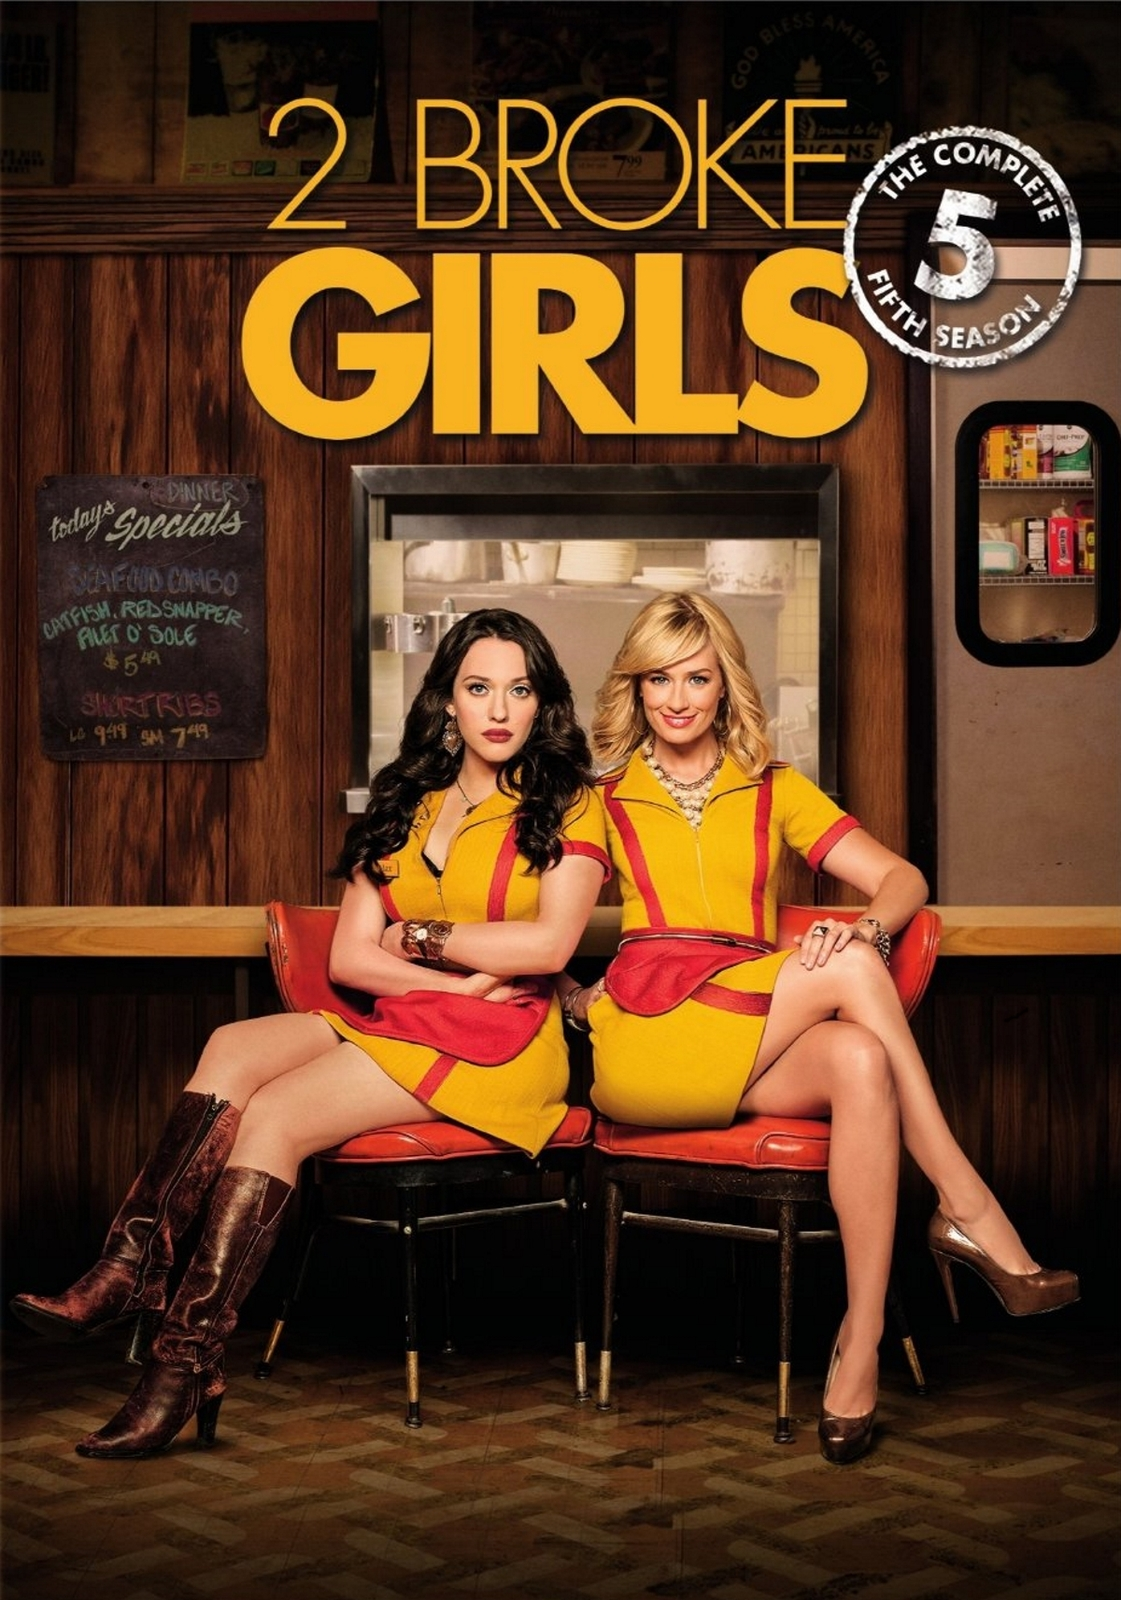 2 Broke Girls The Complete Fifth Season Five 5 (DVD, 2016, 3-Disc Set) New